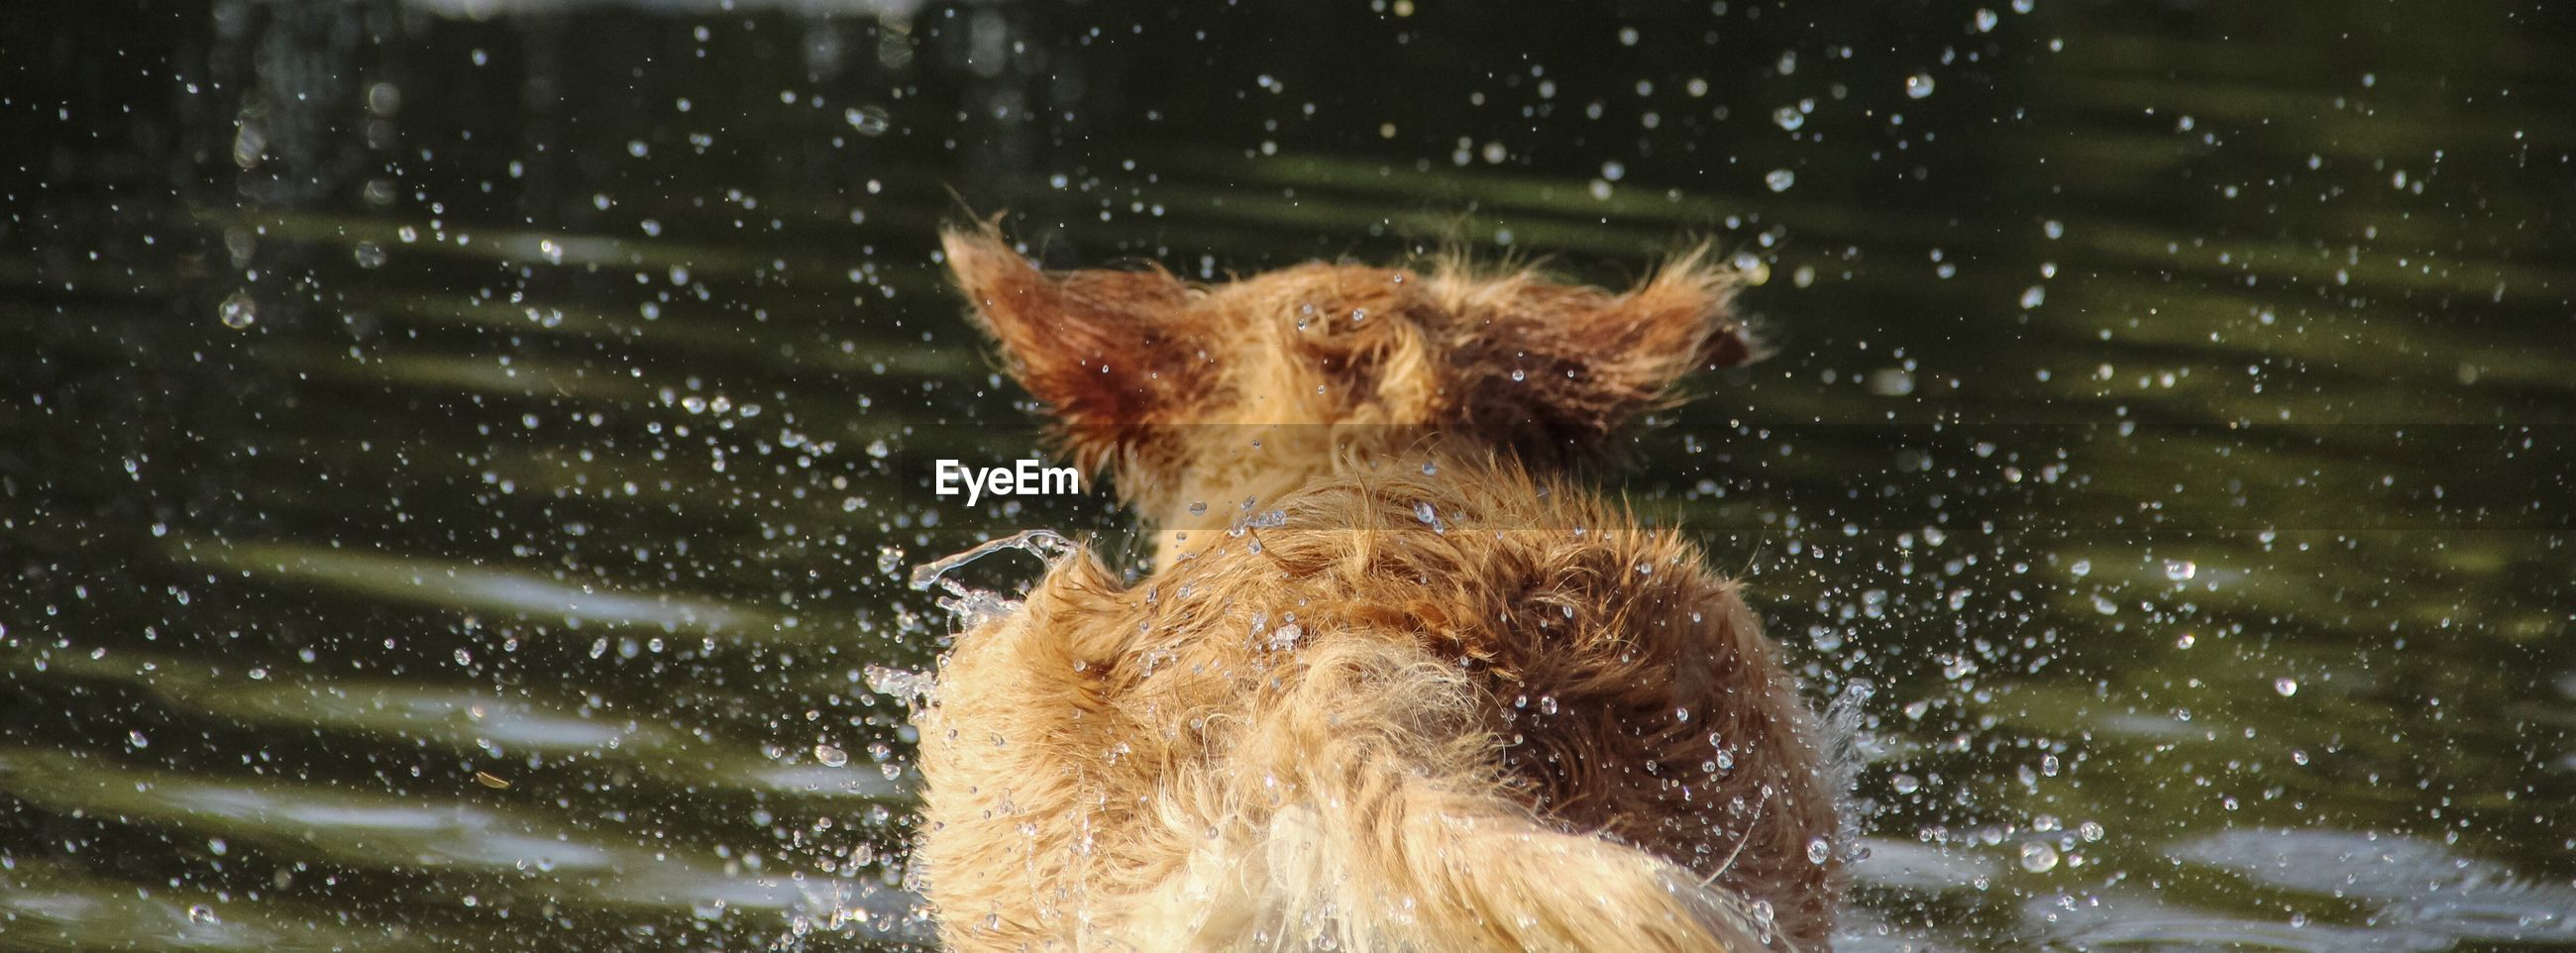 Rear view of dog running in water